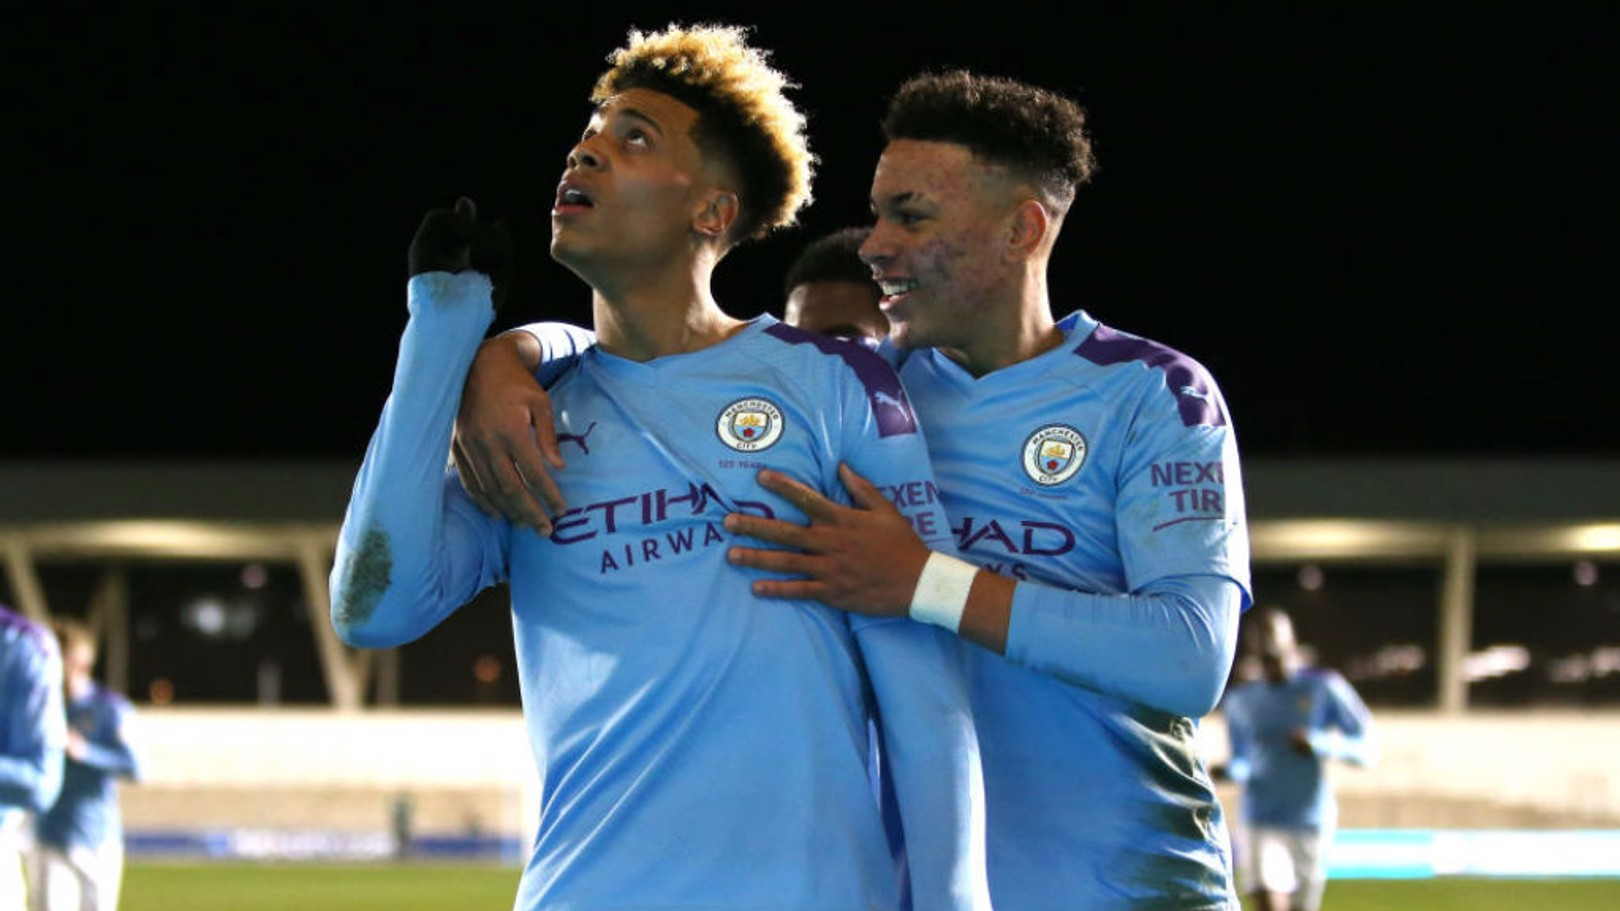 ALL SMILES: Felix Nmecha celebrates with Morgan Rogers after his goal in the EDS side's impressive 4-1 win against Everton last Friday